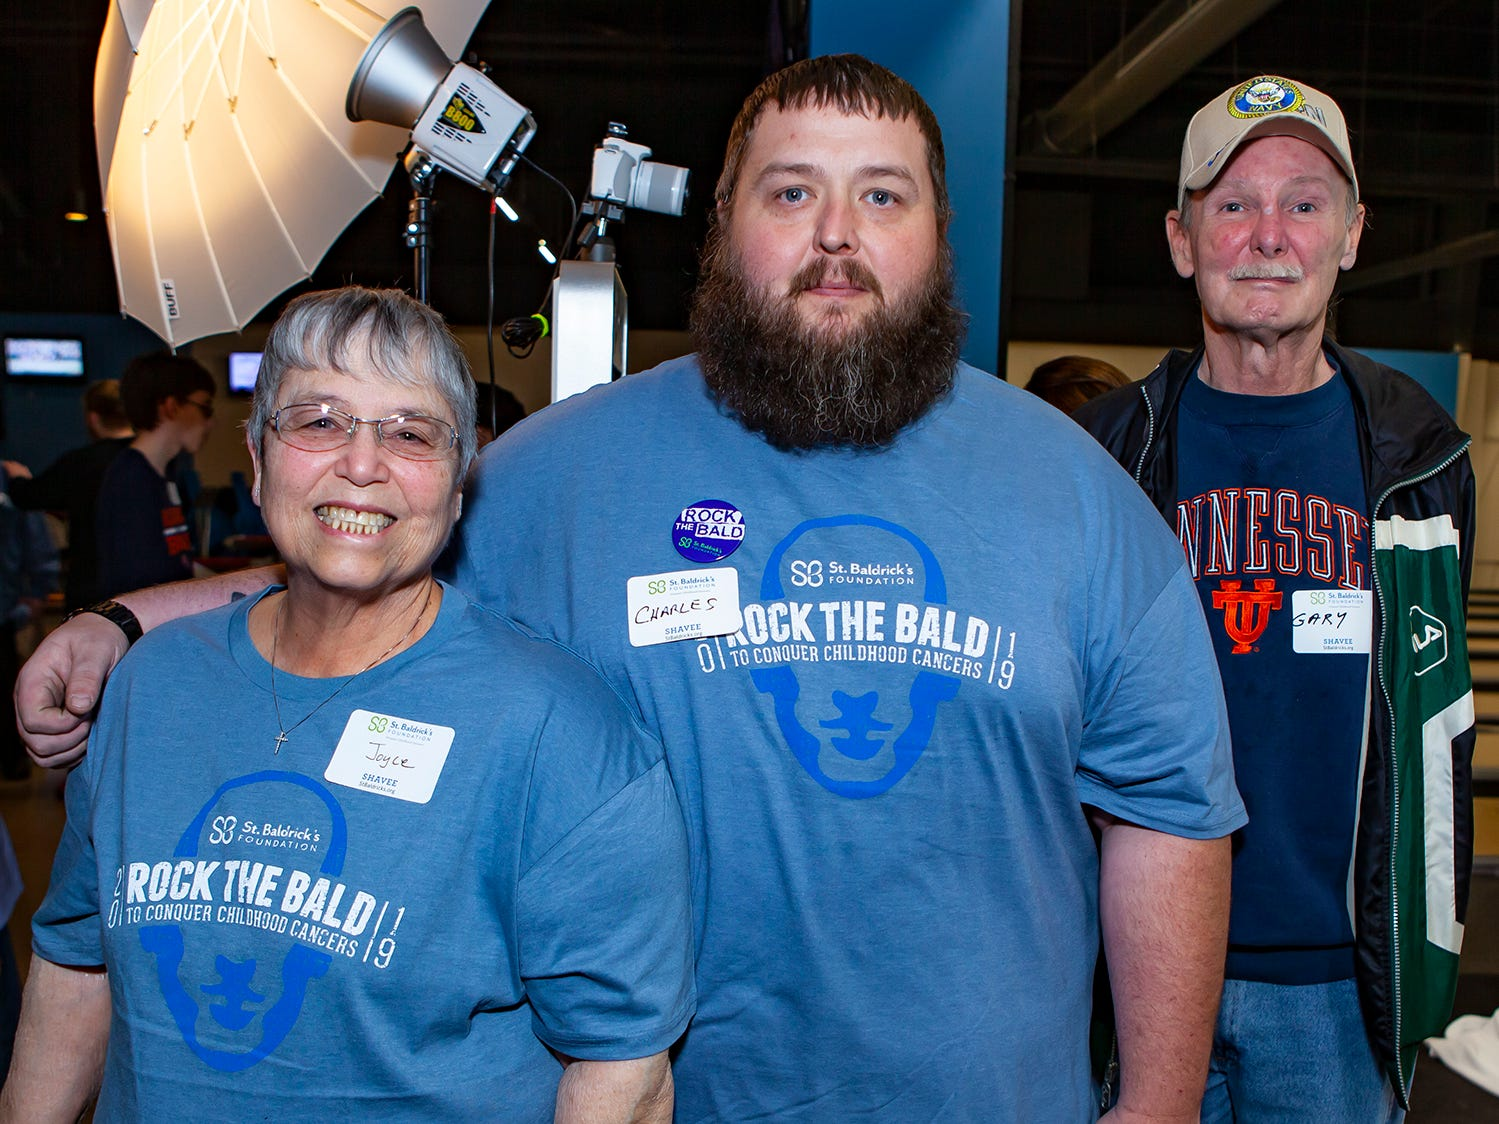 Joyce Tibbs participated in Bald in the Boro for the seventh year, along with Charles Boyd (6 years) and Gary Pafford (7 years).  Bald in the Boro is a fundraiser for the St. Baldrick's Foundation. The event was held Friday, March 15, 2019 at Lanes, Trains and Automobiles in Murfreesboro.